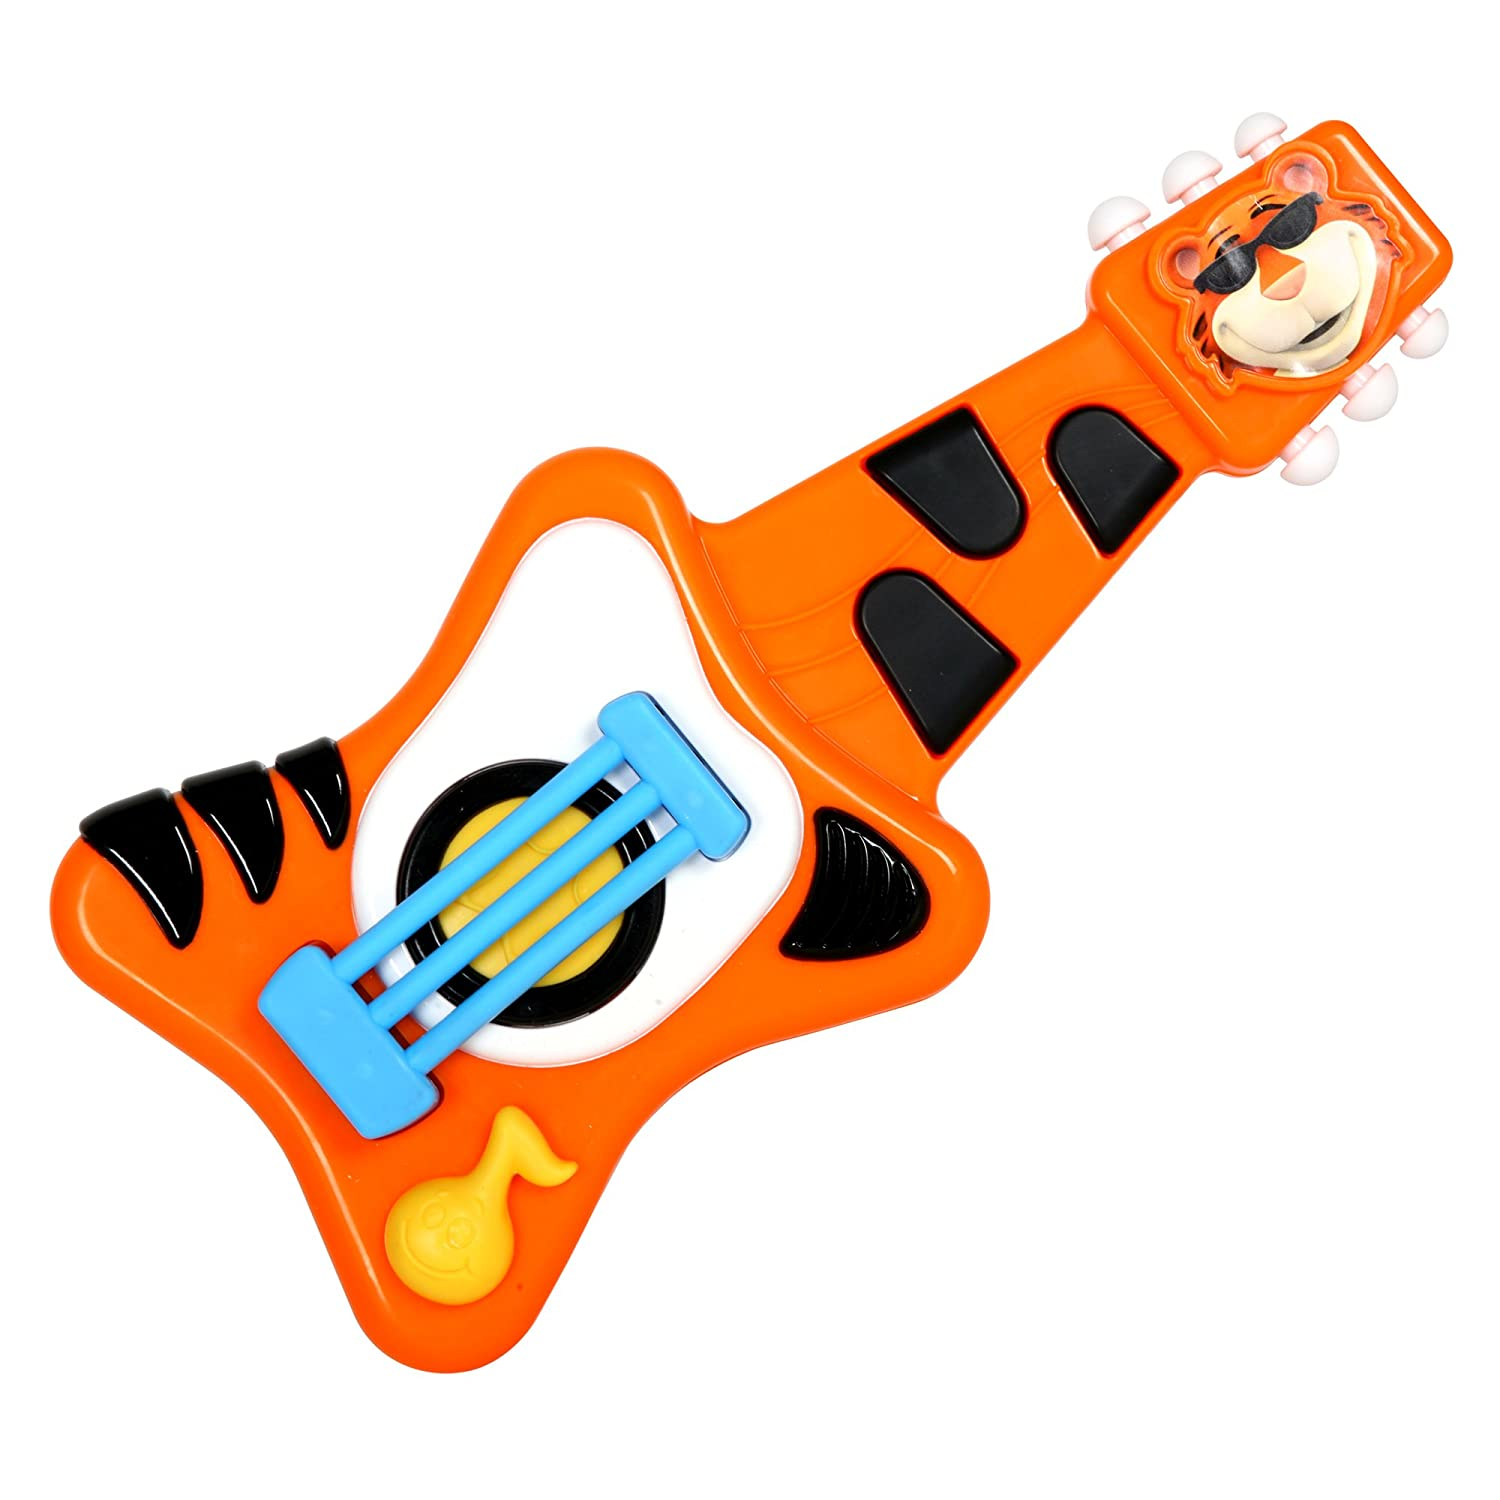 Amazon Baby Genius Tempo s Super Star Guitar Toys & Games